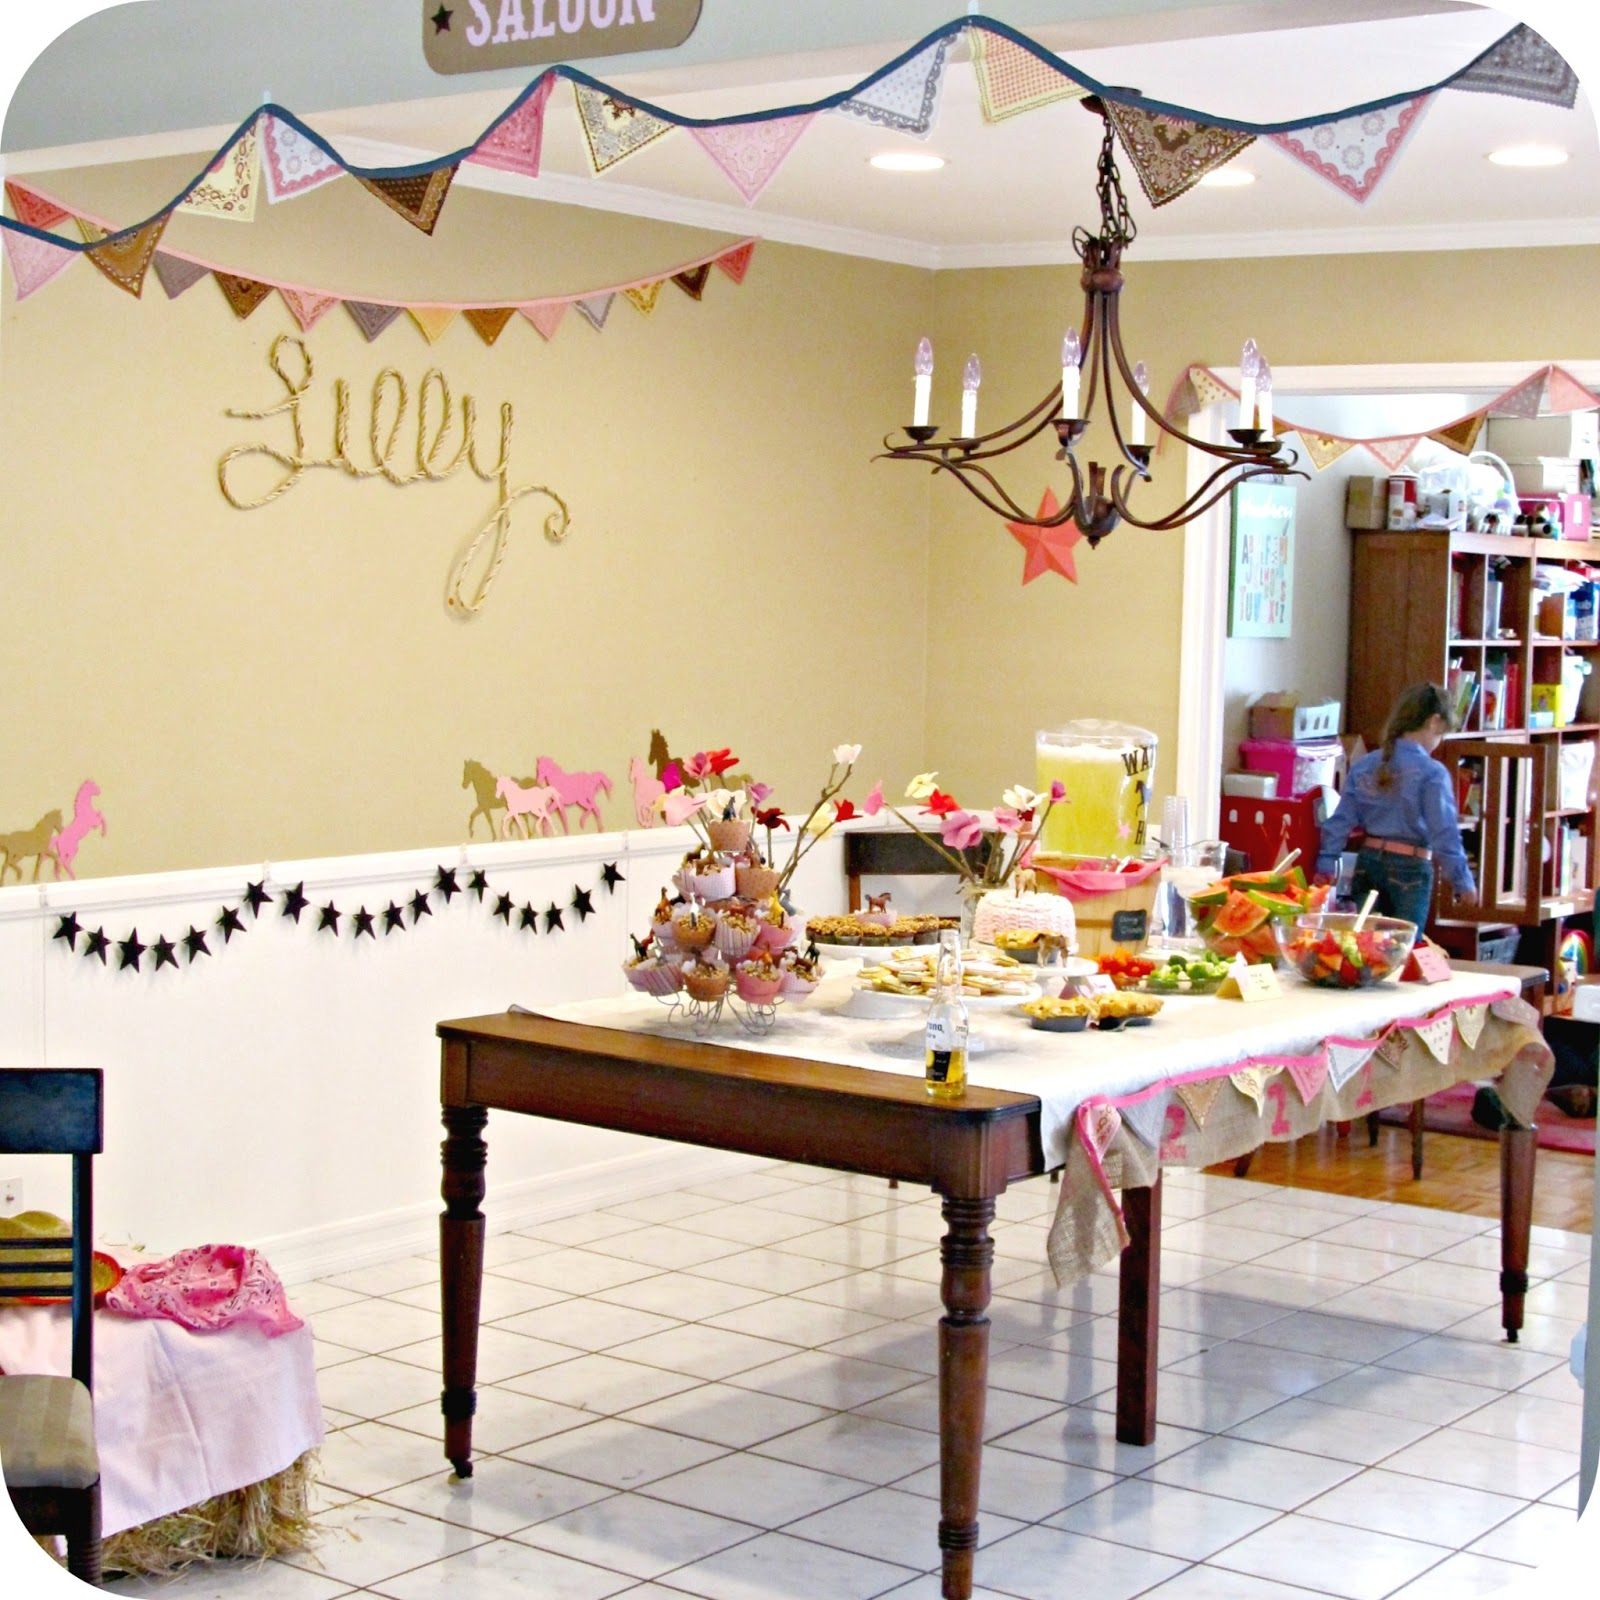 Cowgirl Birthday Decorations Homemade By Jill Lillys Cowgirl Party